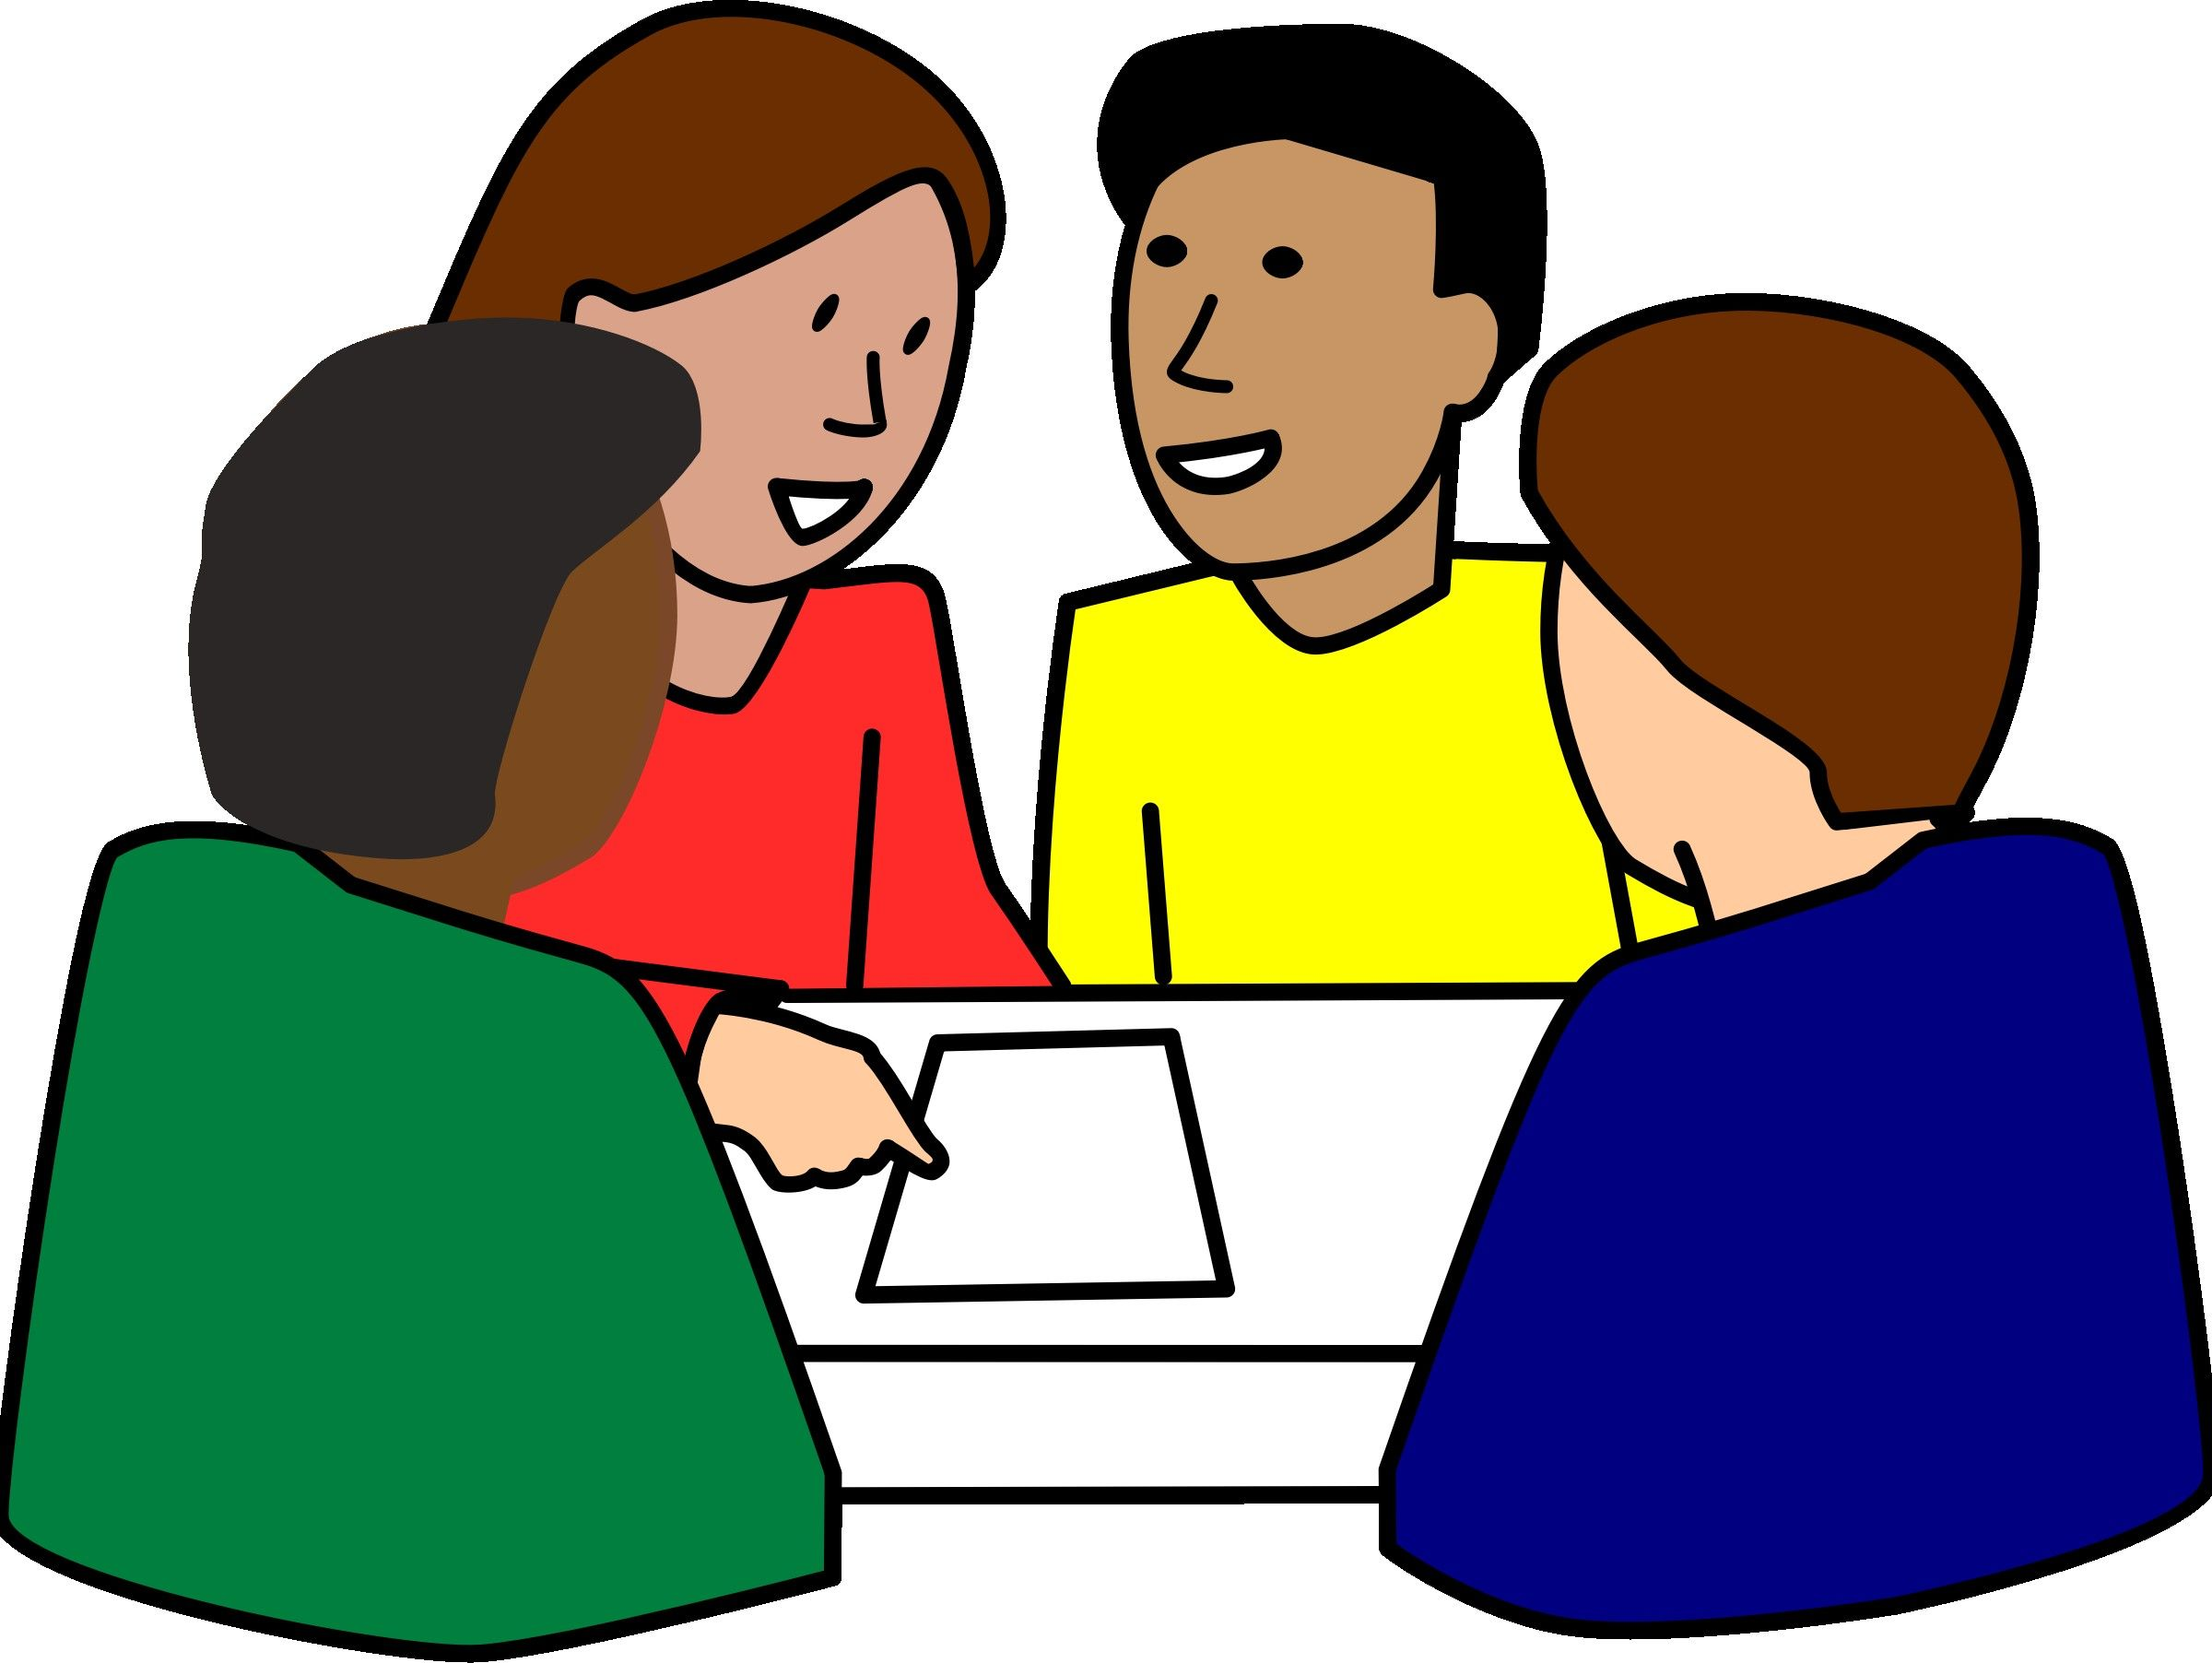 Two students working together clipart image royalty free library students working together clipart law pic team work 2 ... image royalty free library